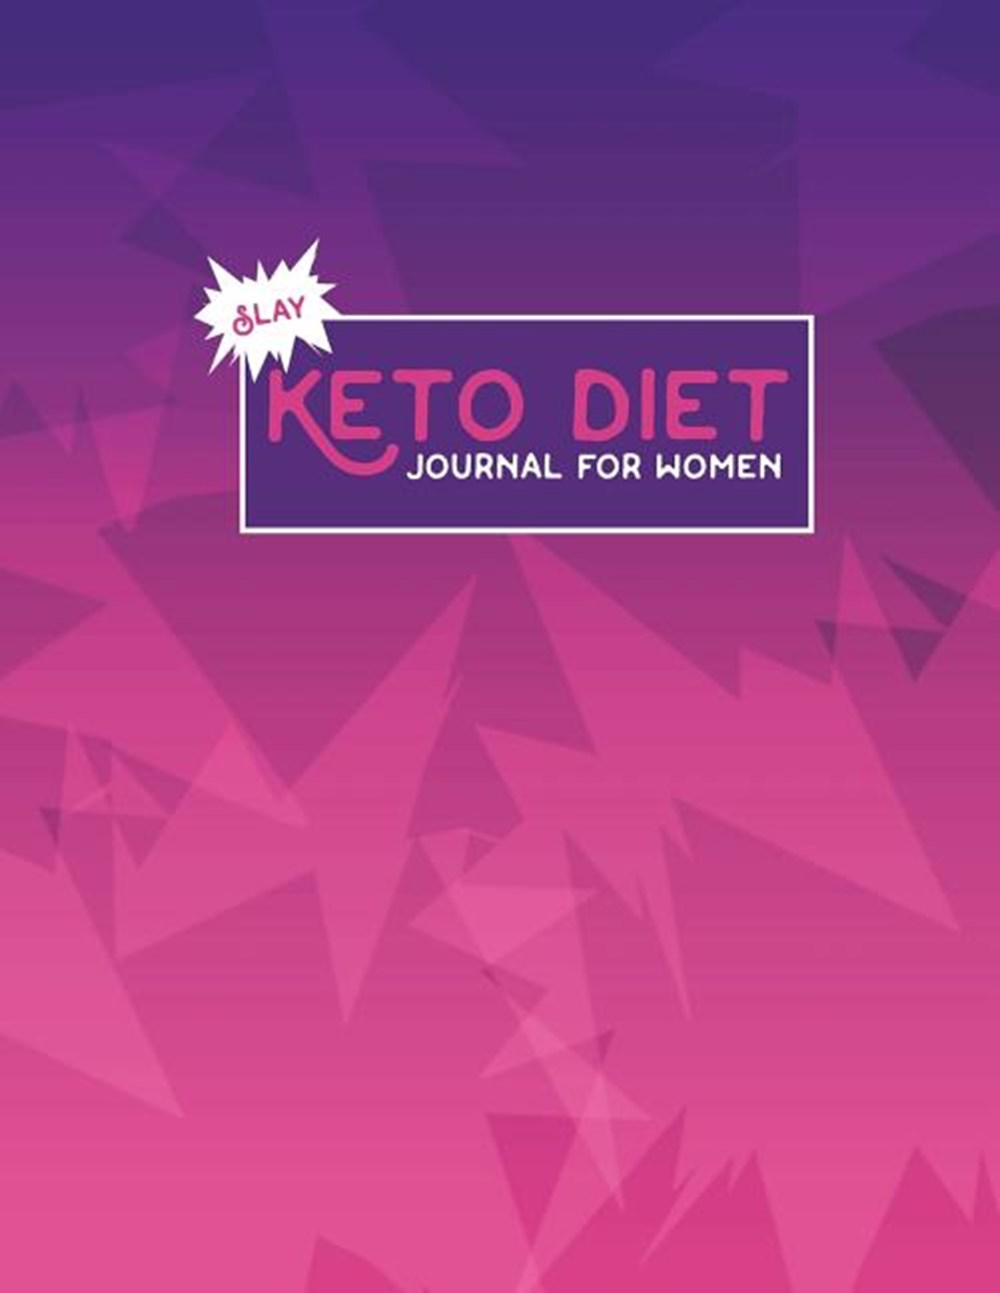 Slay Keto Diet Journal For Women Track Your Daily Food And Drink Intake Macros Meal Tracking Log For Your Ketogenic Diet Weight Loss Fitness By April Starck